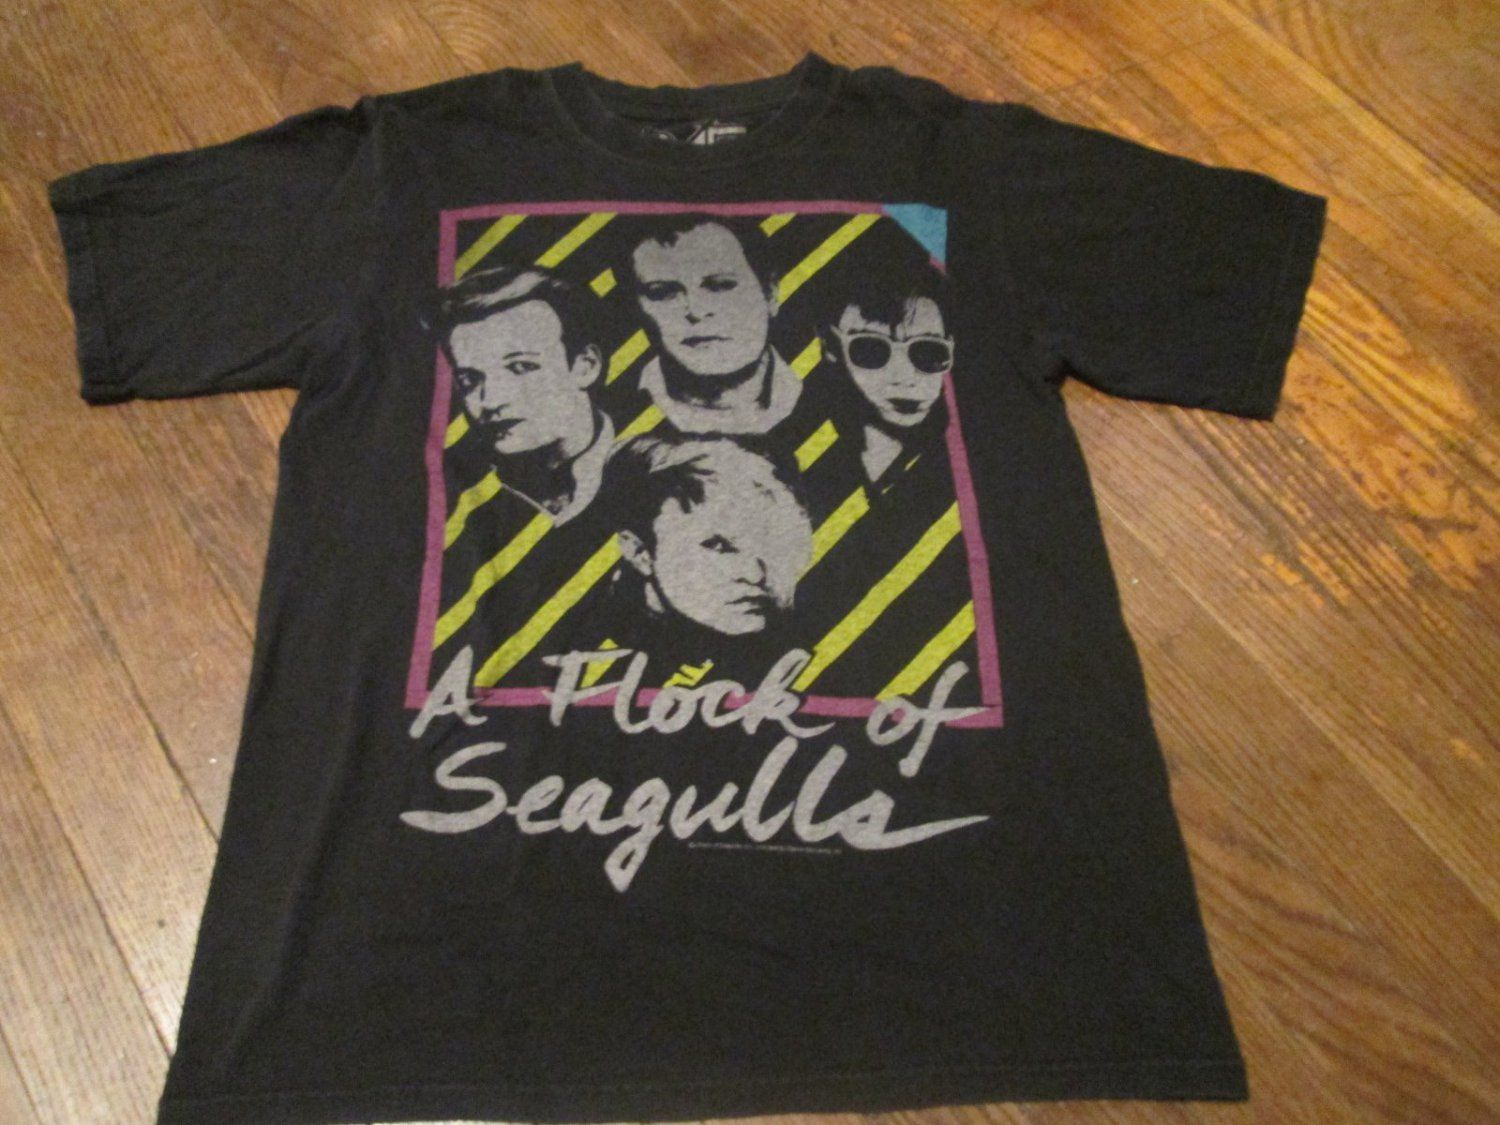 6753c9b0e Flock Of Seagulls 80s Graphic Band T-Shirt Size Small  www.4EverYoung.Ecrater.com